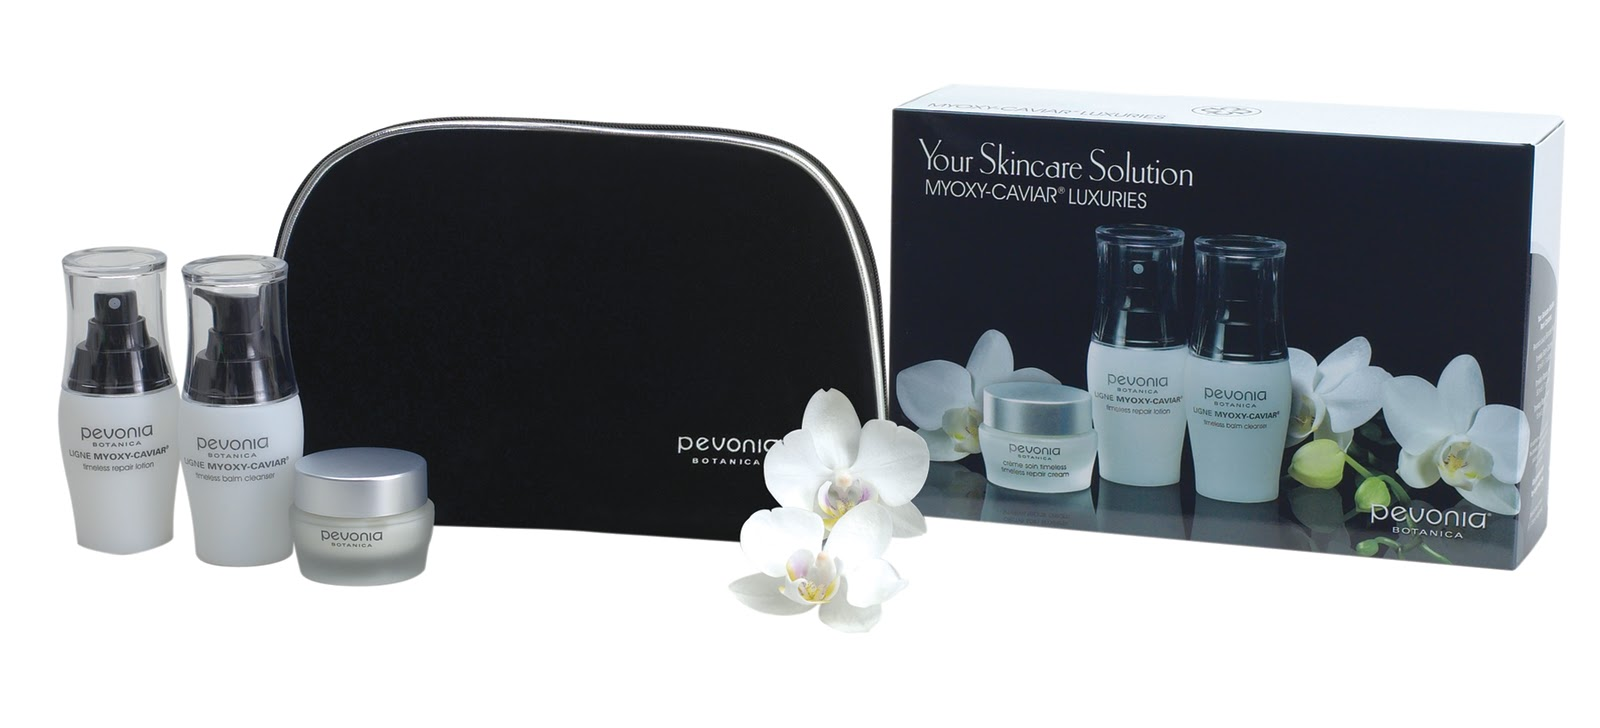 Free Pevonia Skin Renew Sampler Kit By Mail